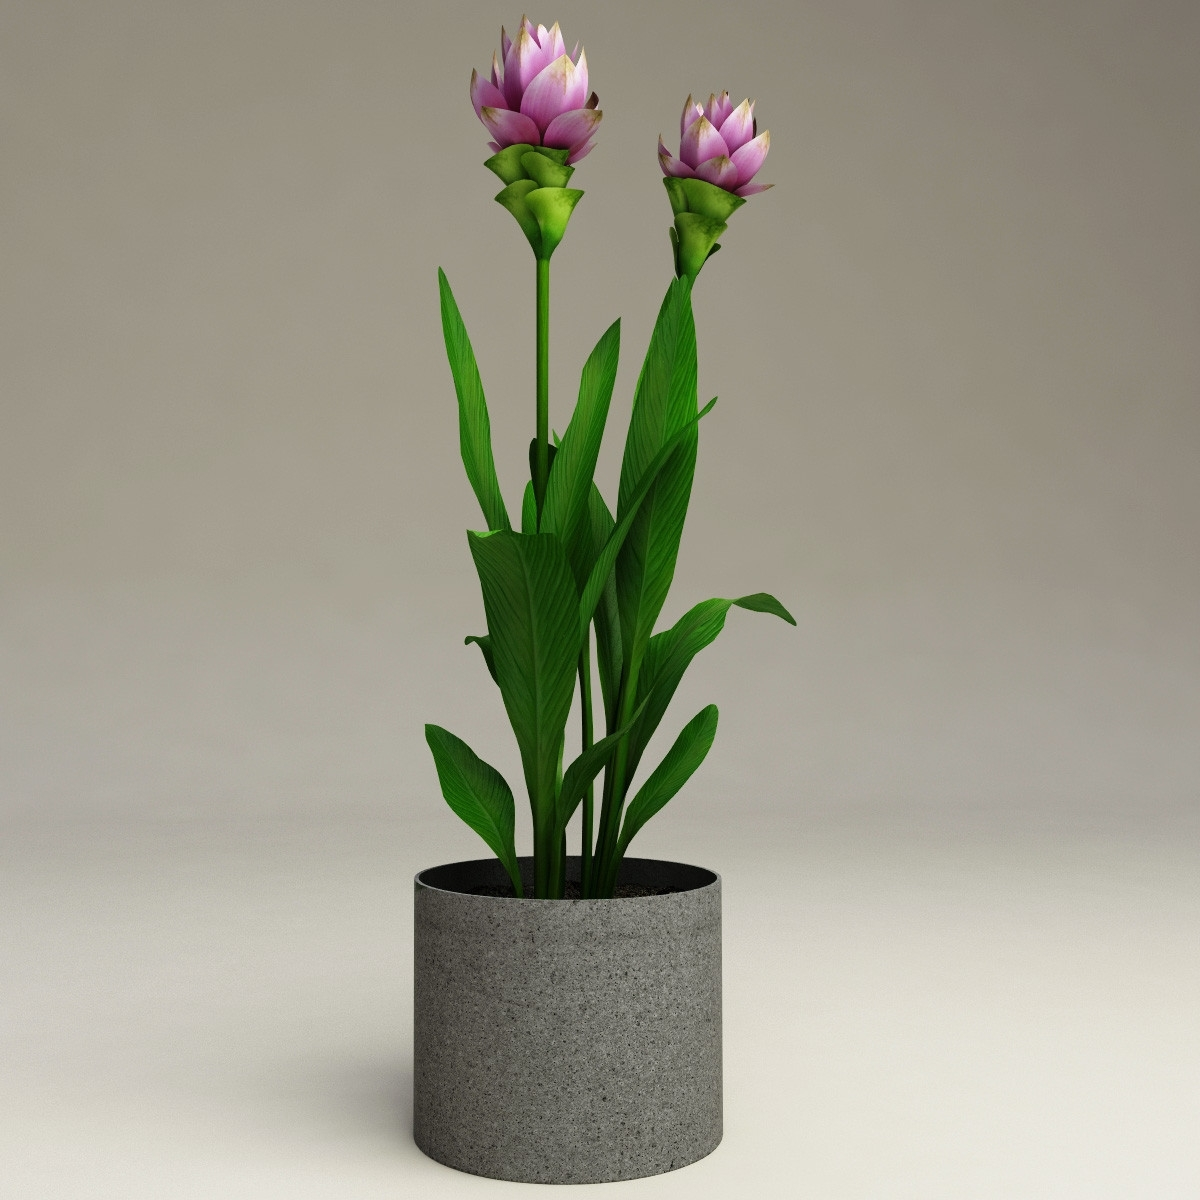 curcuma curcuma alismatifolia curcuma alismatifolia piante da interno curcuma curcuma. Black Bedroom Furniture Sets. Home Design Ideas